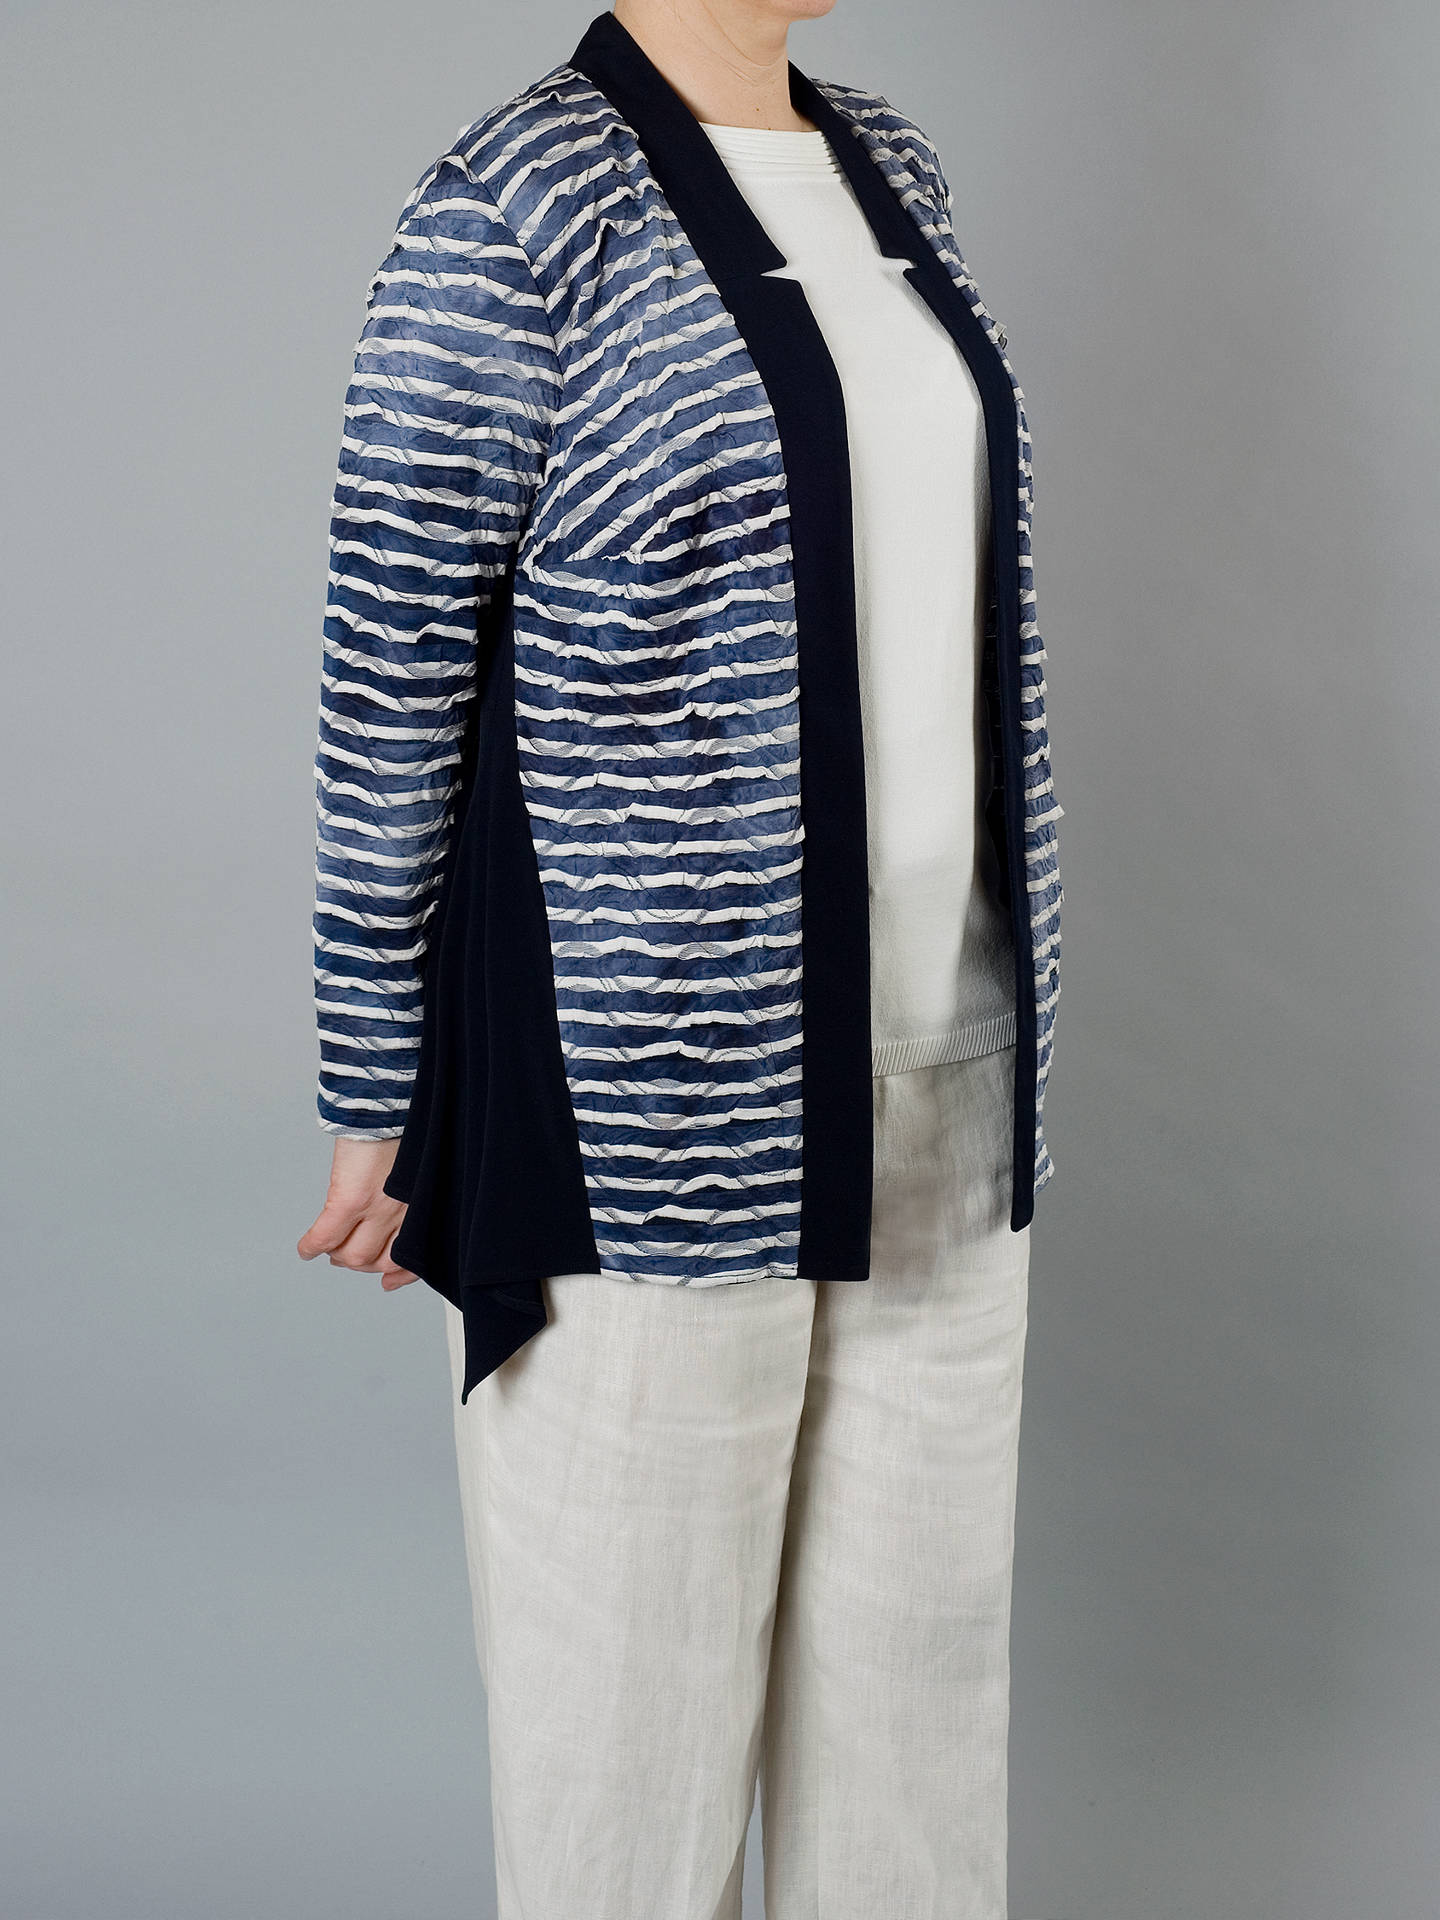 BuyChesca Tie Dye Stripe Fancy & Plain Jersey Cardigan, Navy, 12-14 Online at johnlewis.com